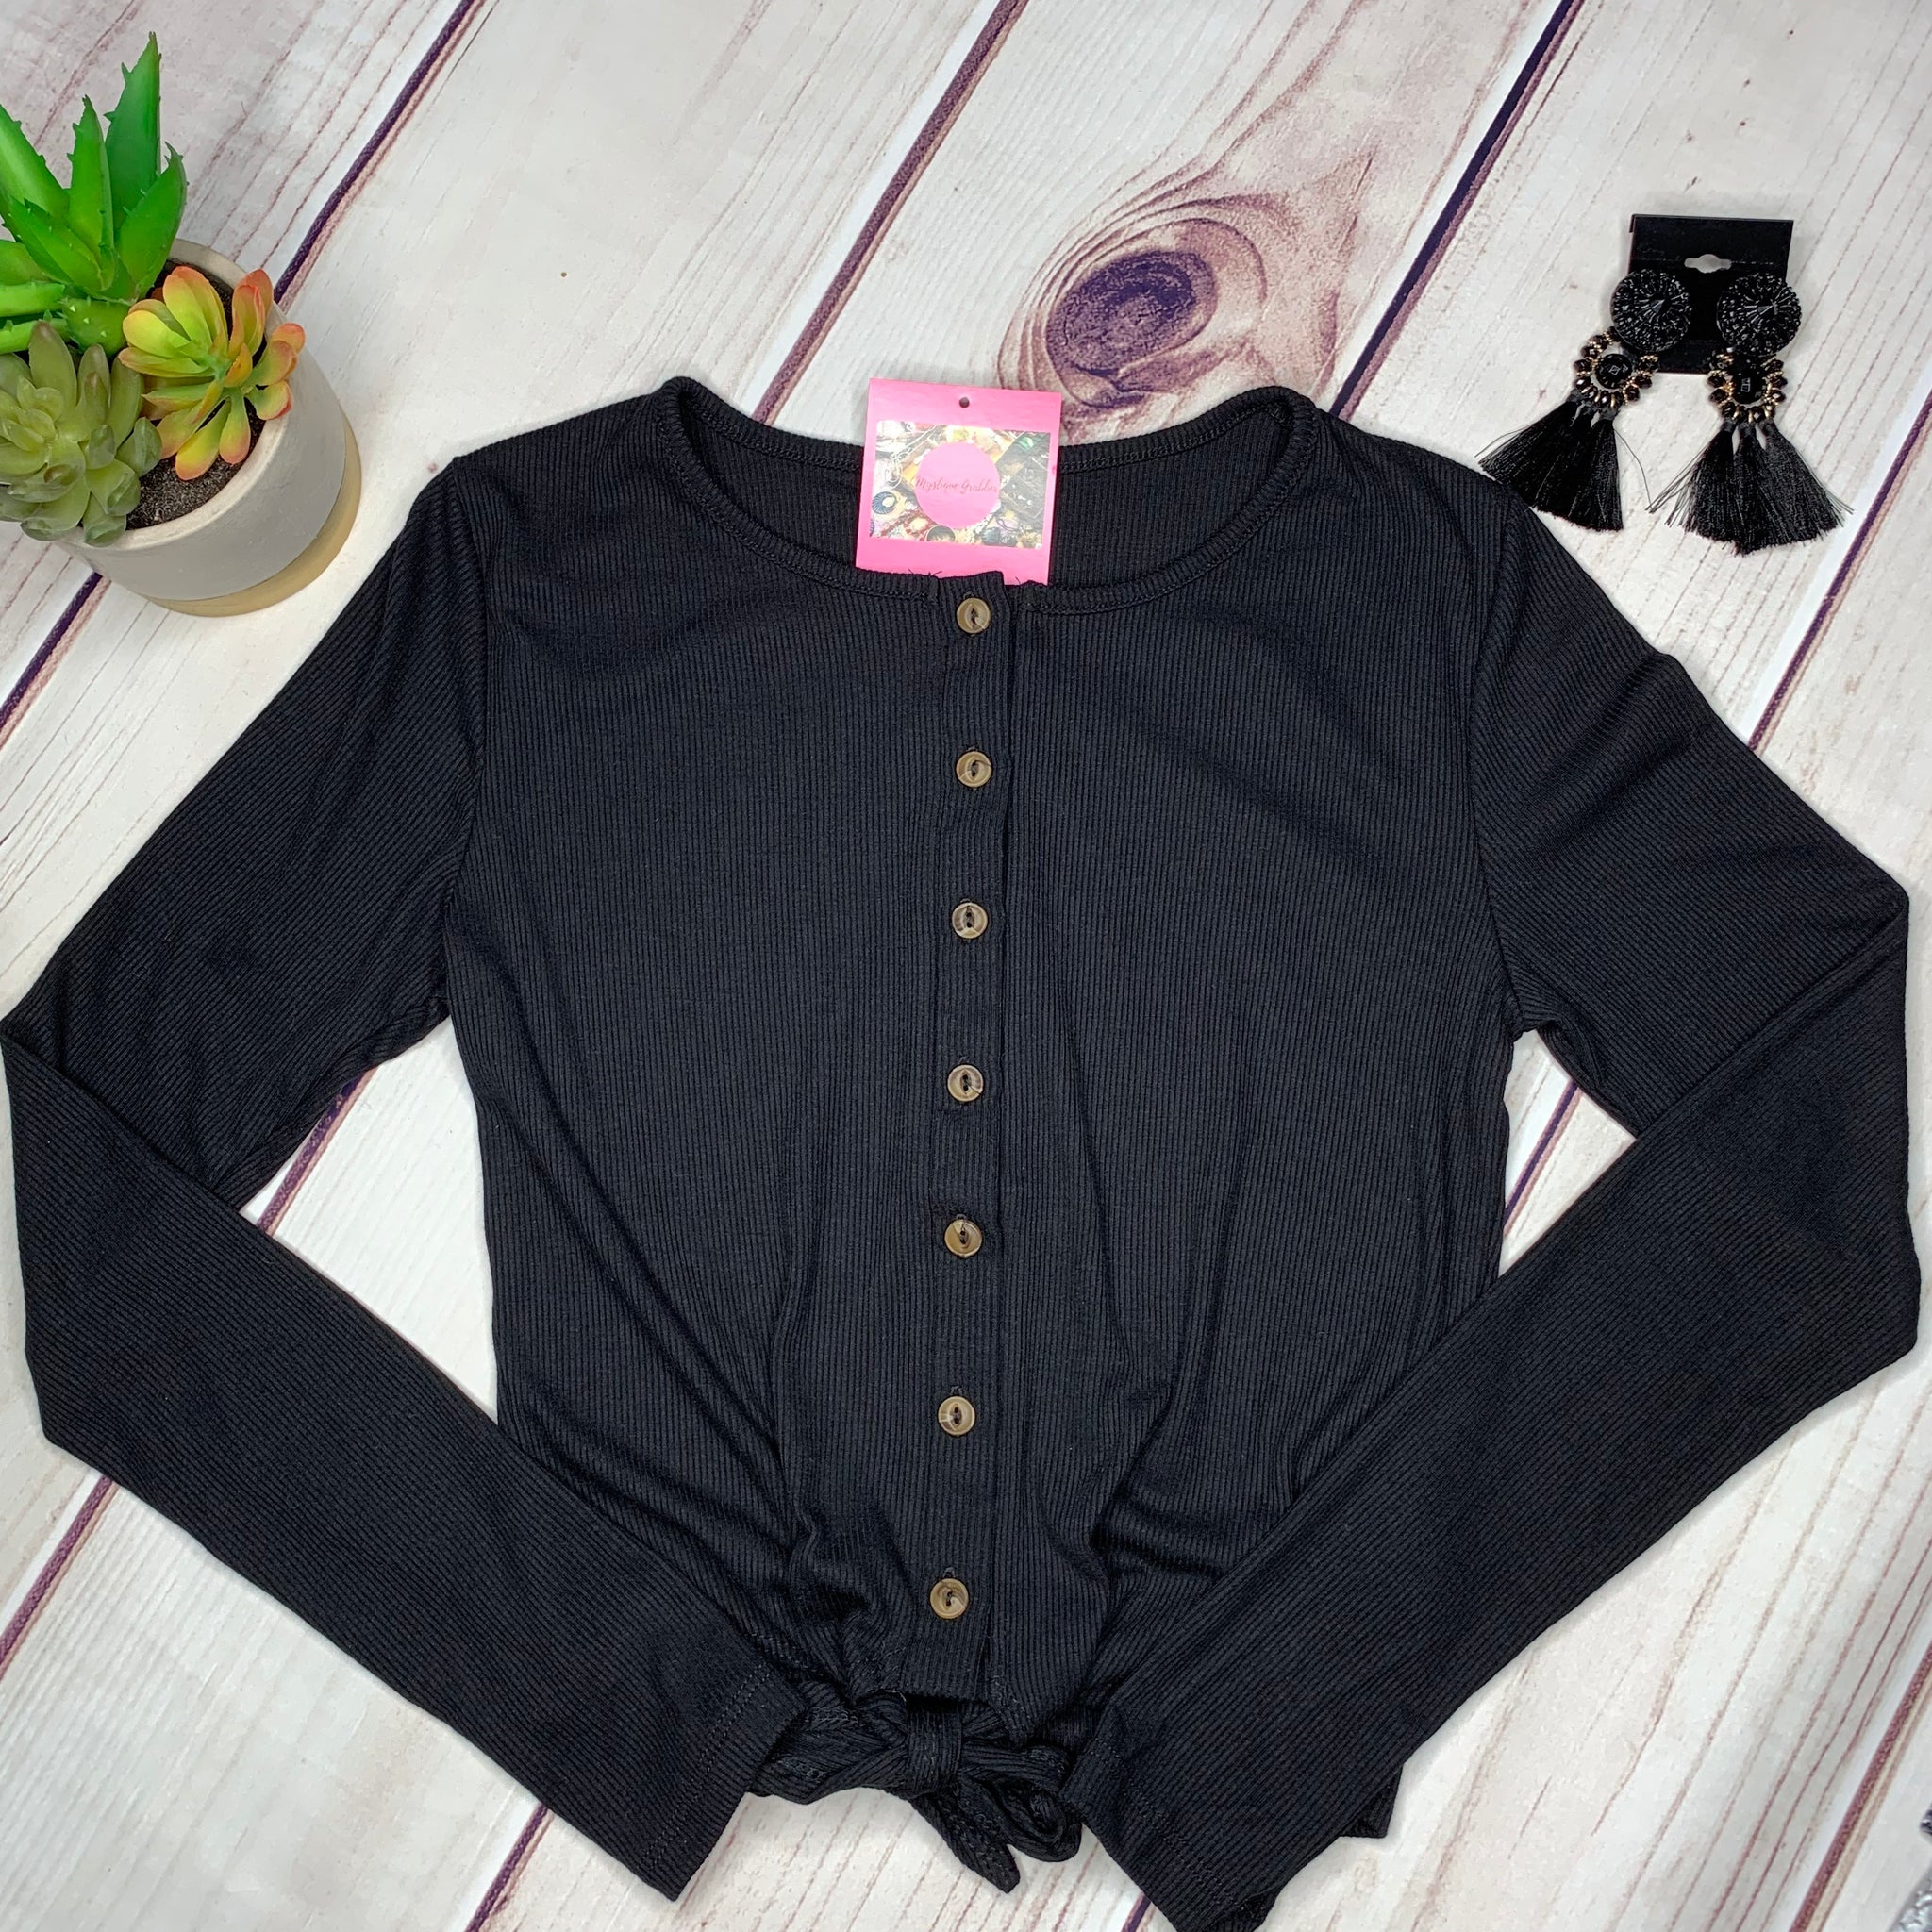 Button Down Knotted Long Sleeve Top - Black (S&M)